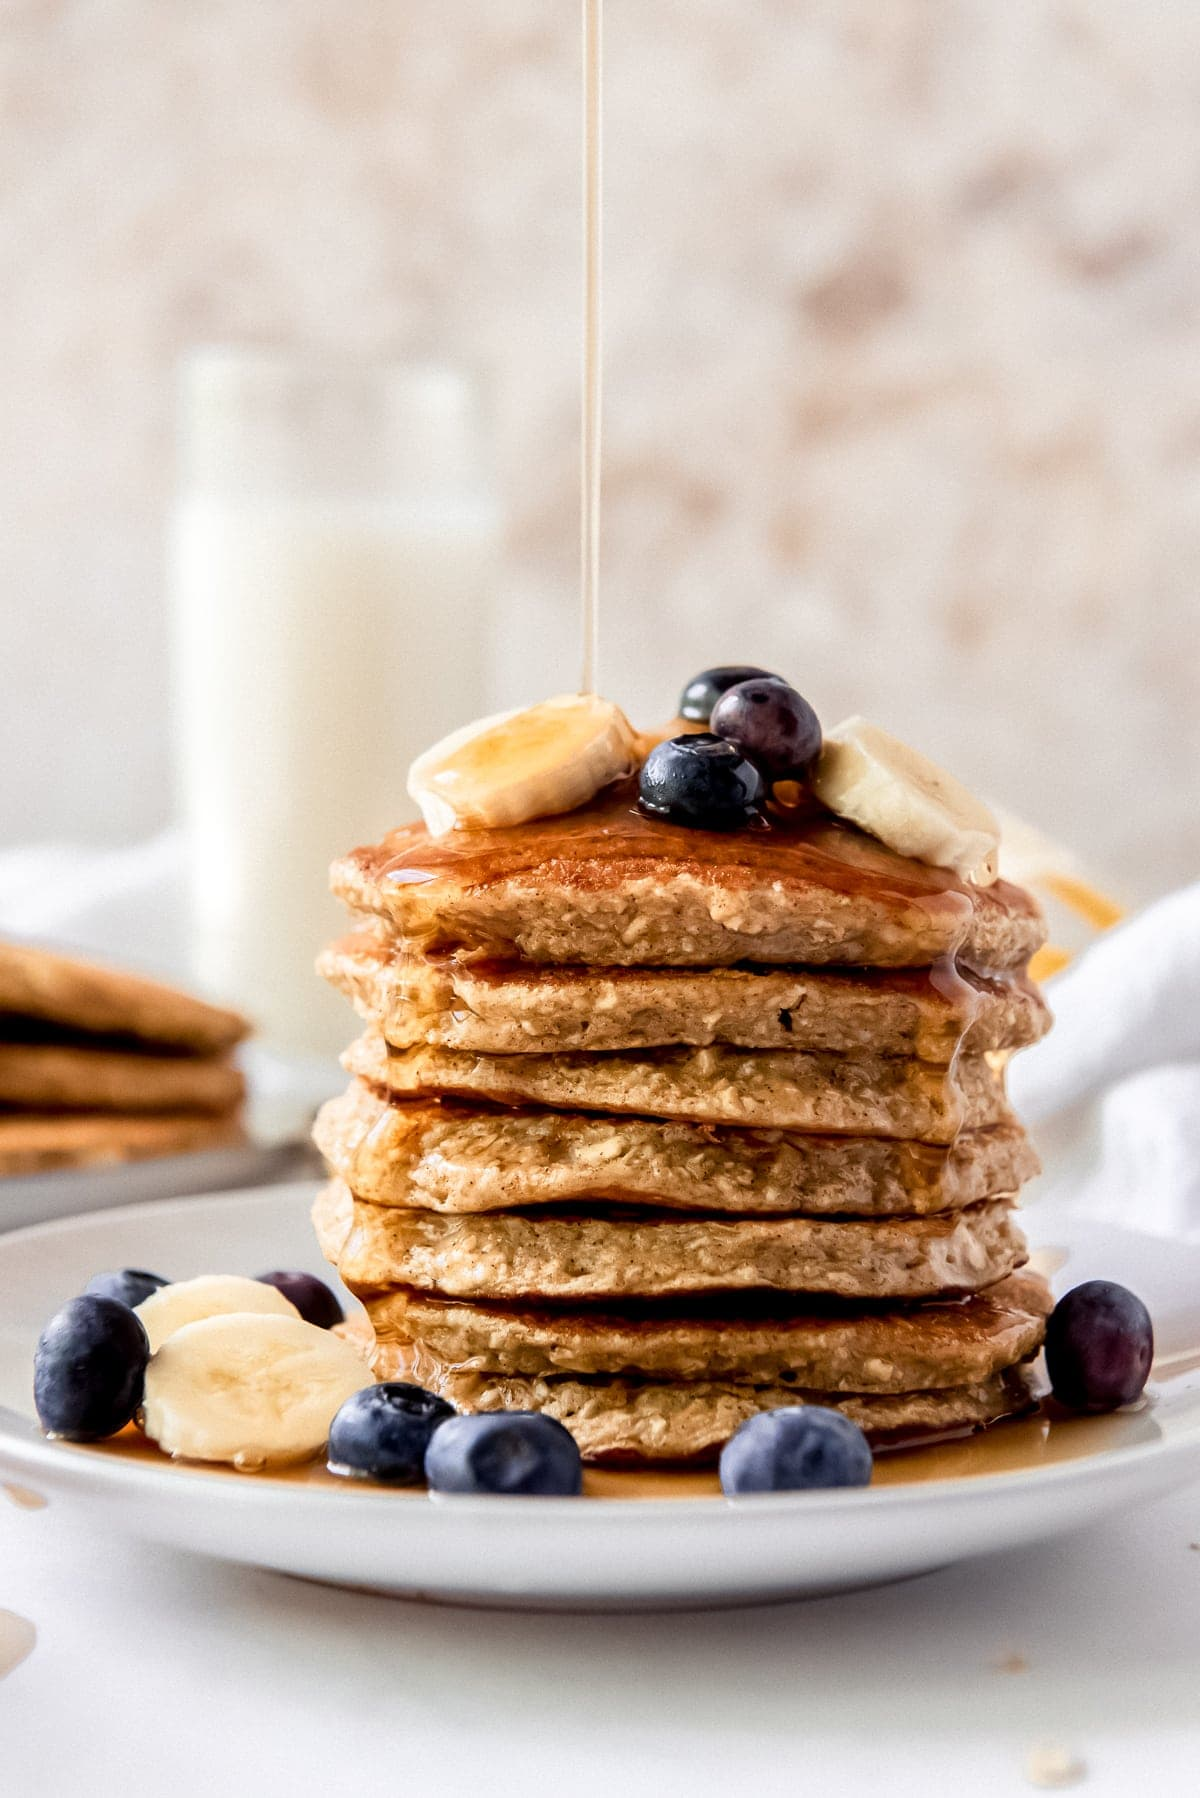 maple syrup poured on a stack of banana oatmeal pancakes with sliced bananas and blueberries